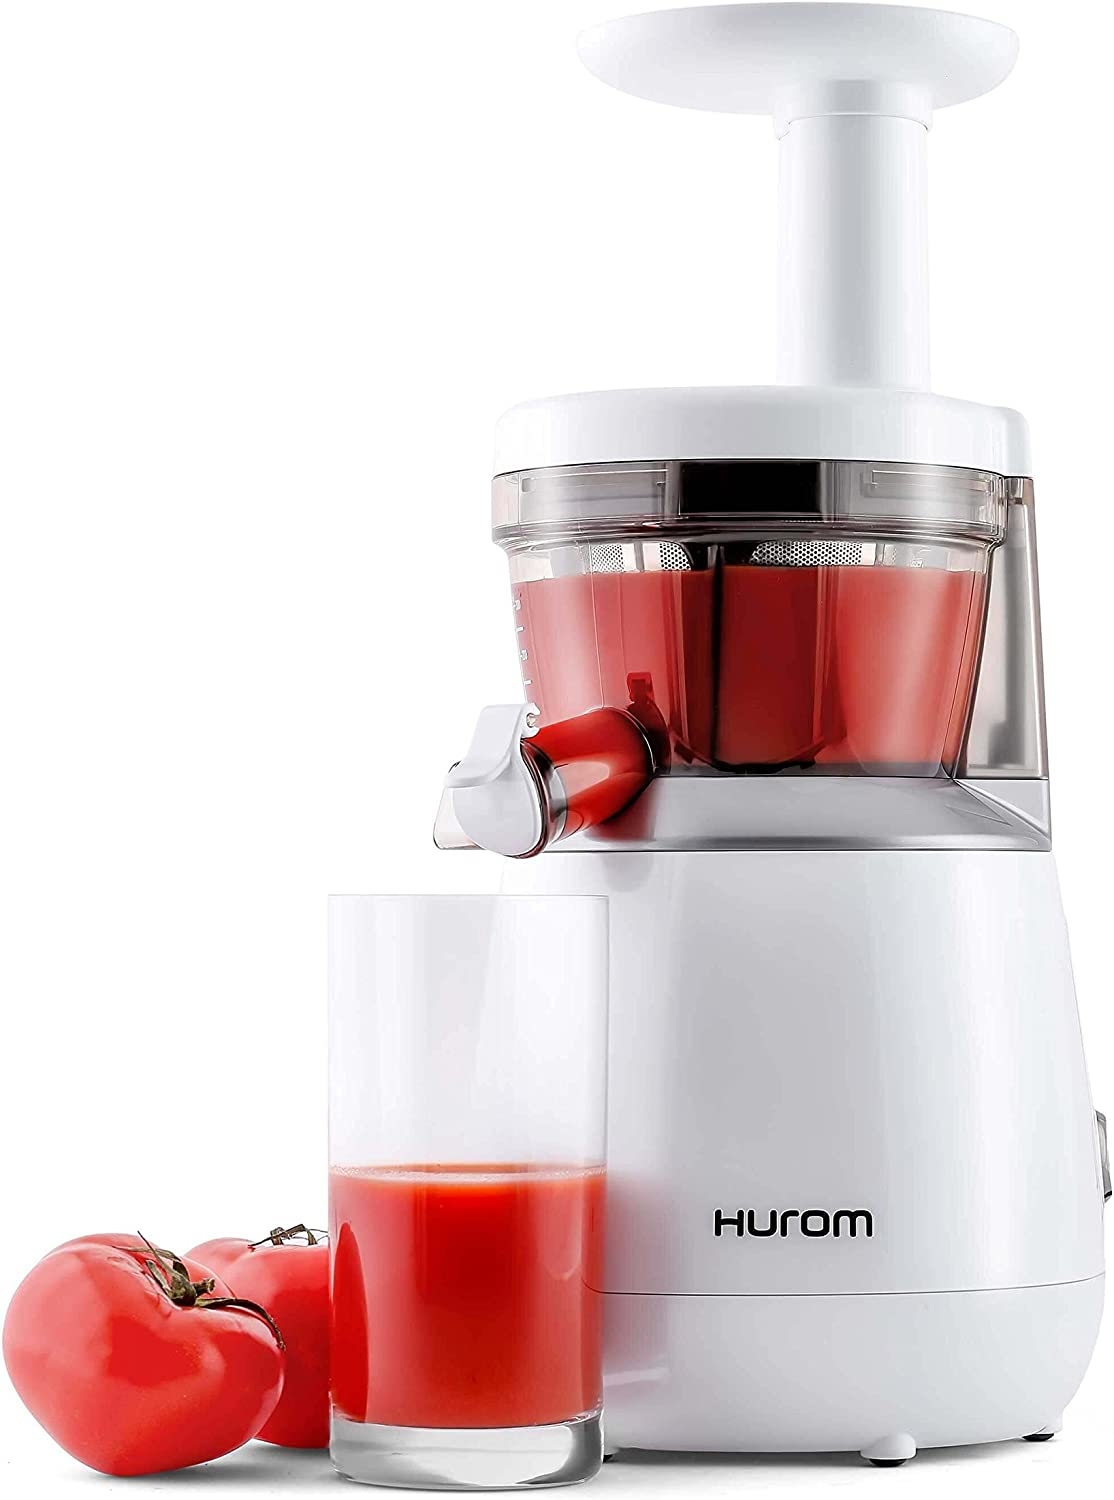 Hurom HP Slow Juicer Review: Is It As Good As It Looks?